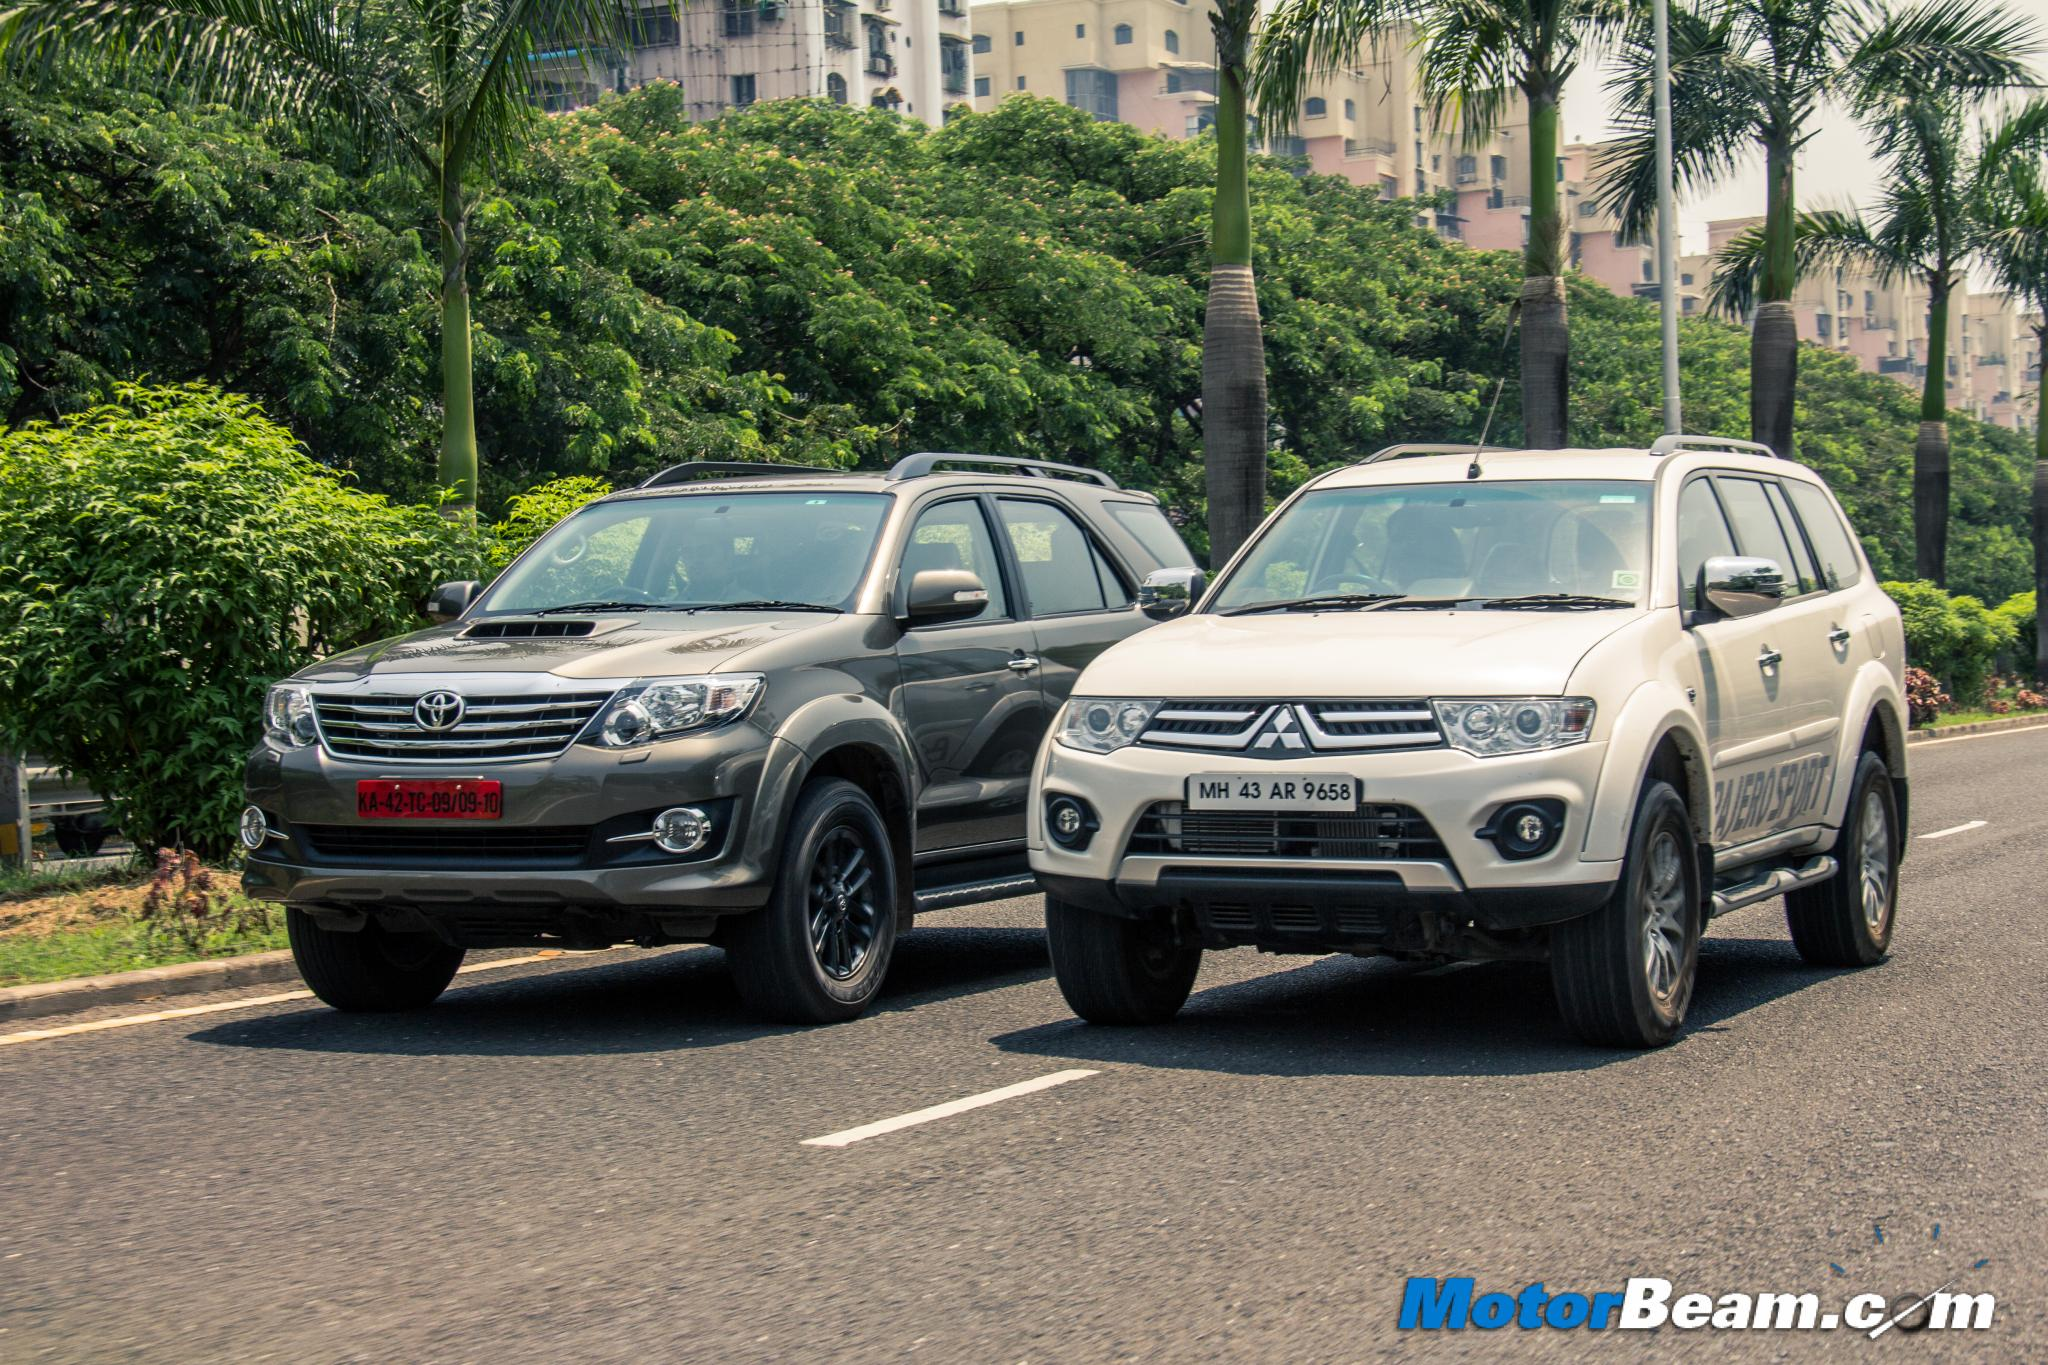 Spy Pictures Of Toyota Fortuner 2014.html | 2017 - 2018 Cars Reviews